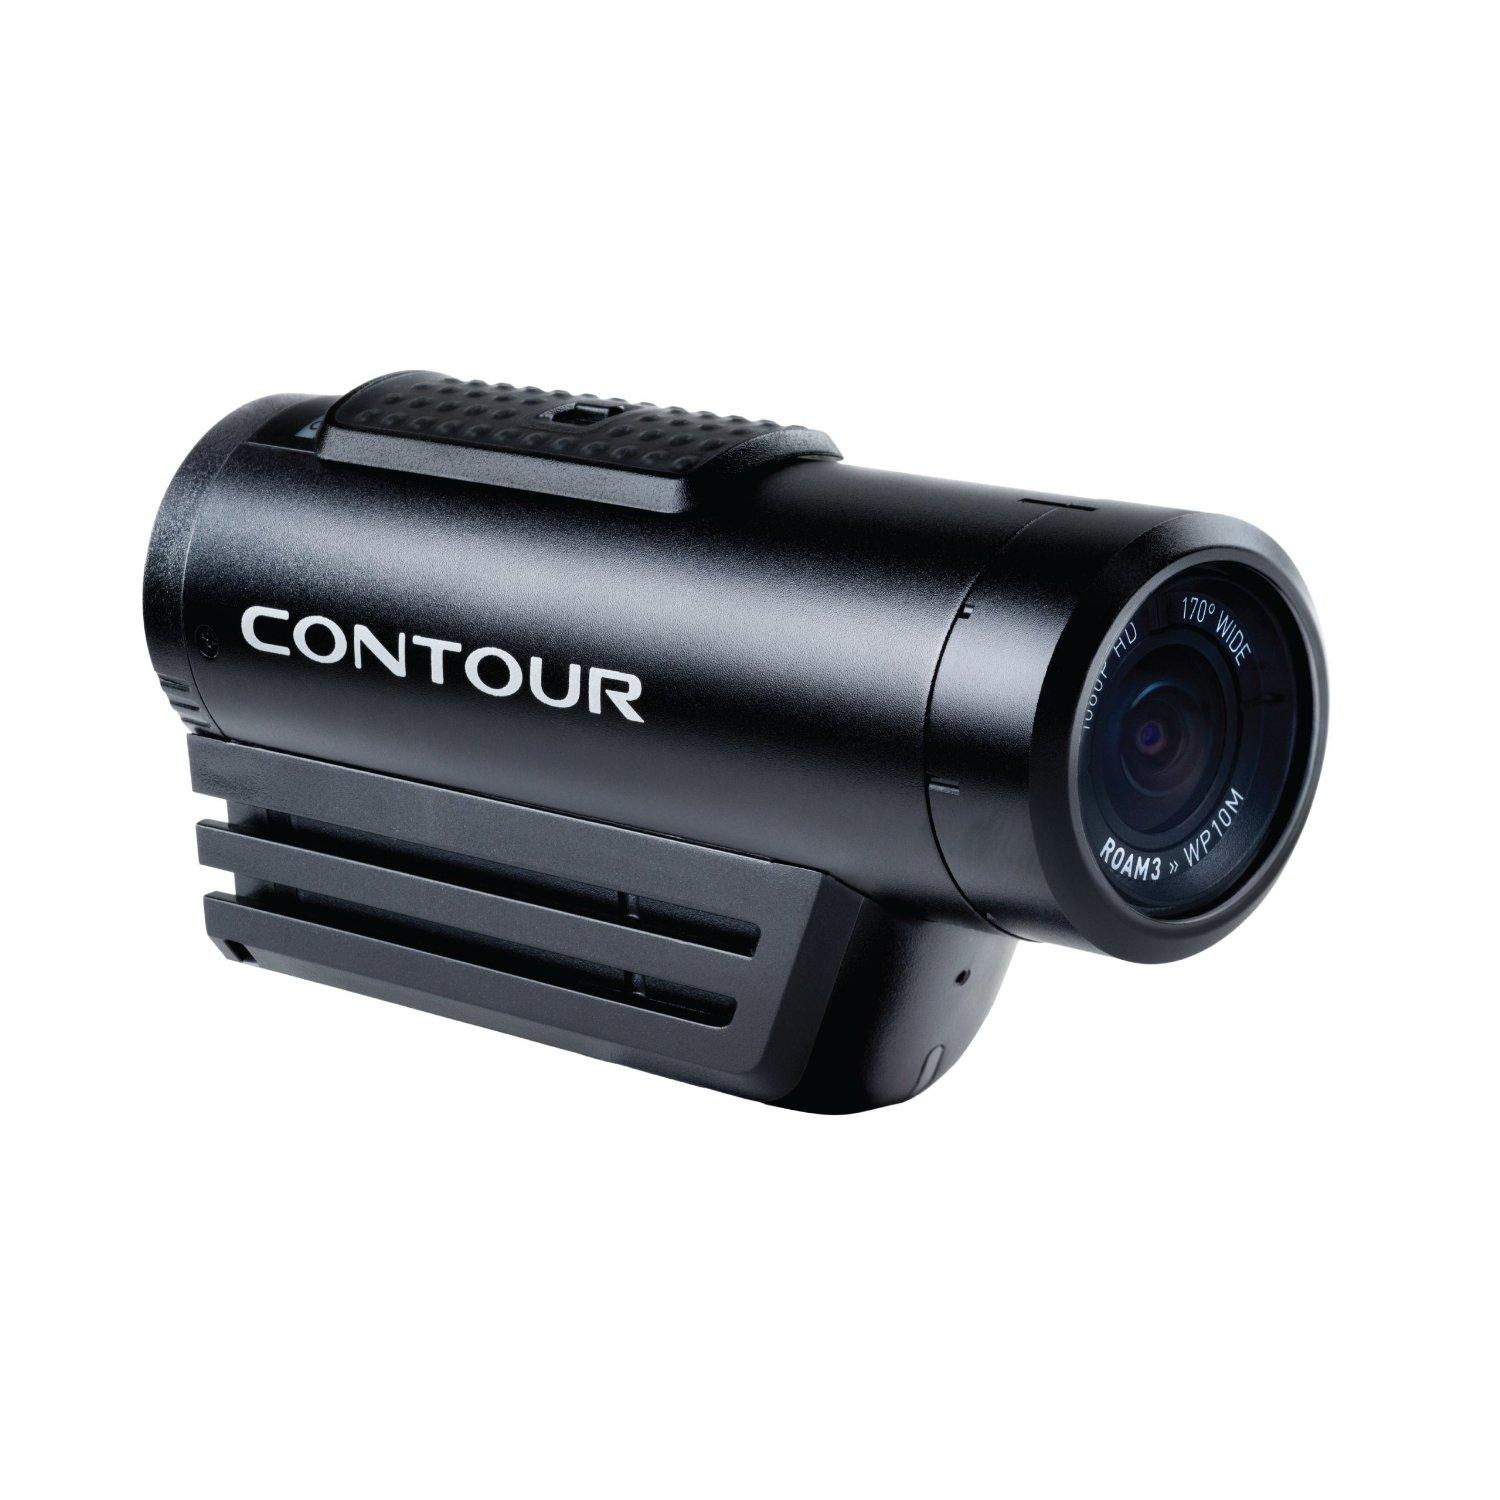 Contour ROAM3 Waterproof HD Video Camera (Black)